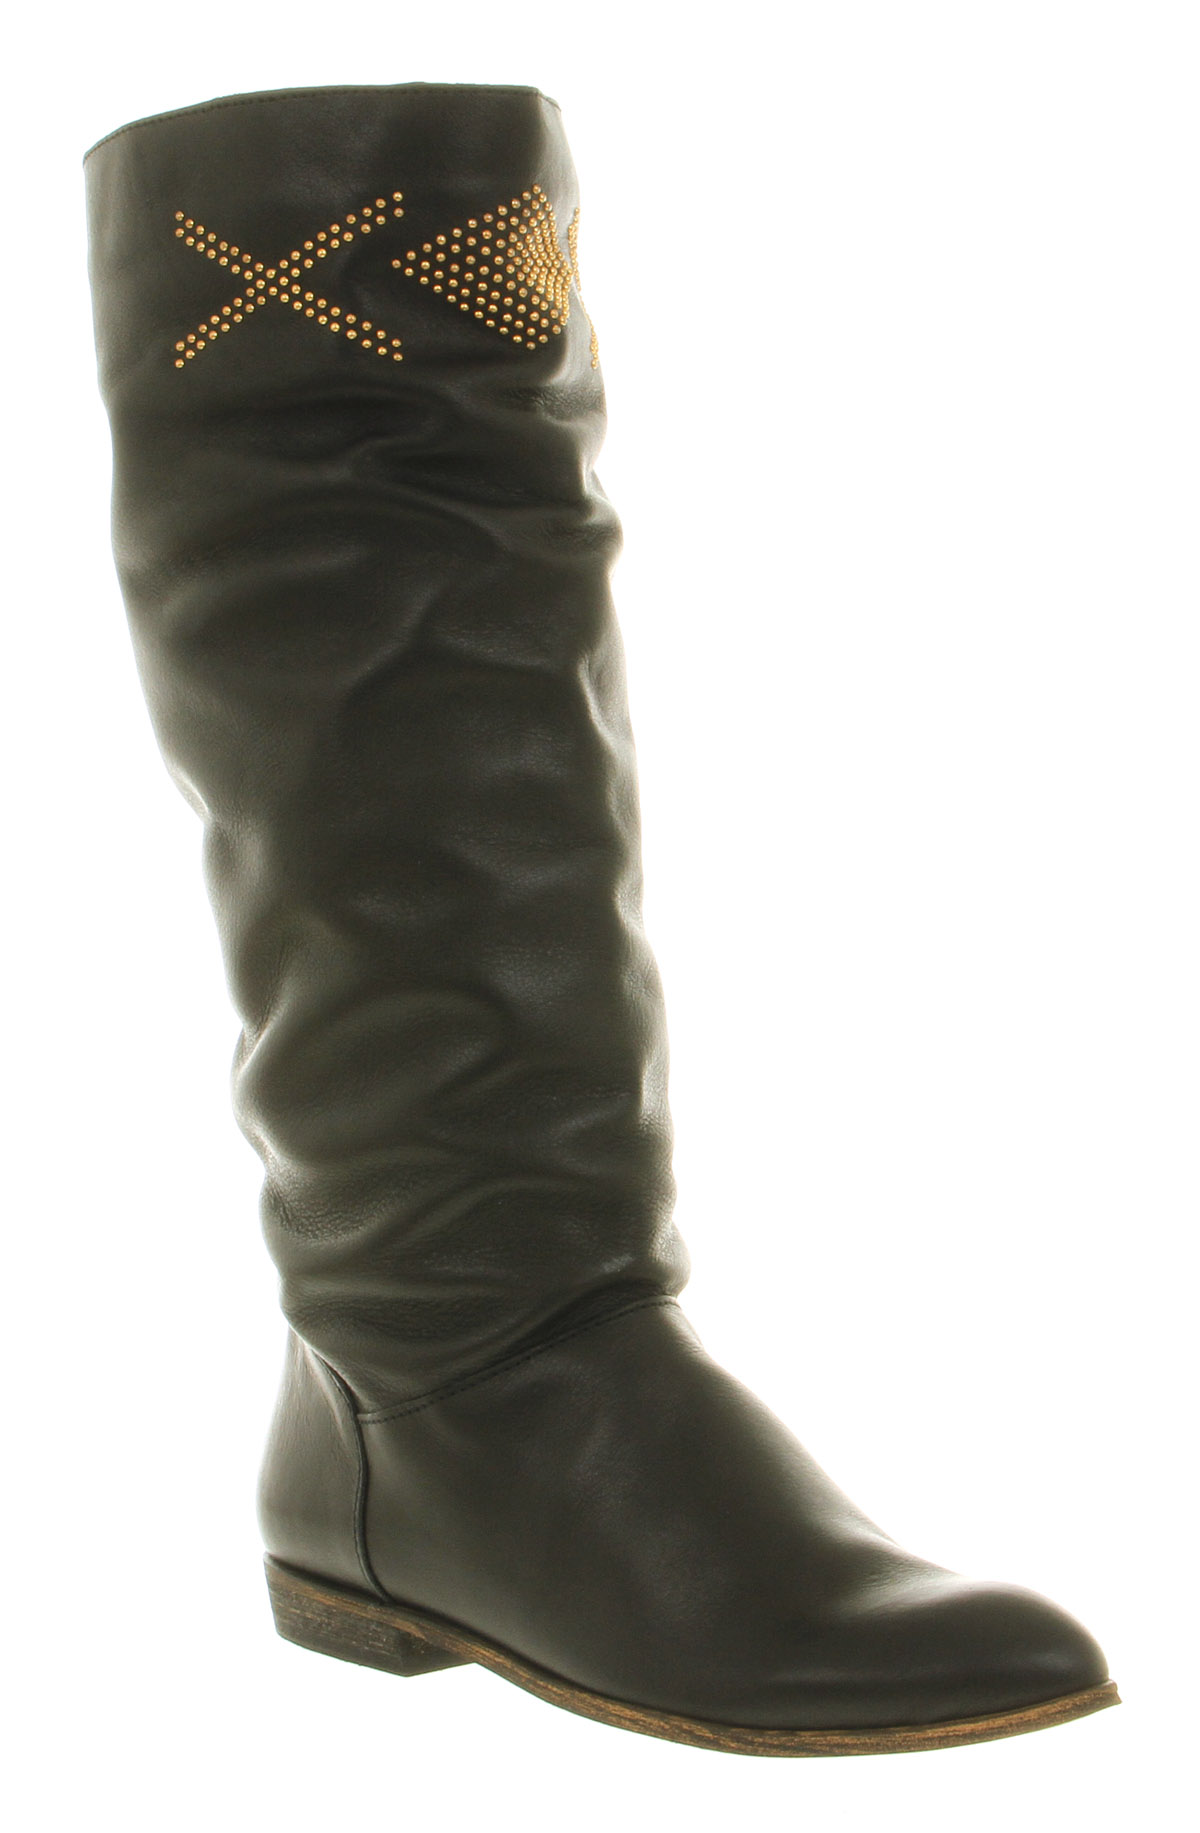 office galicia stud boot black leather gold studs in black